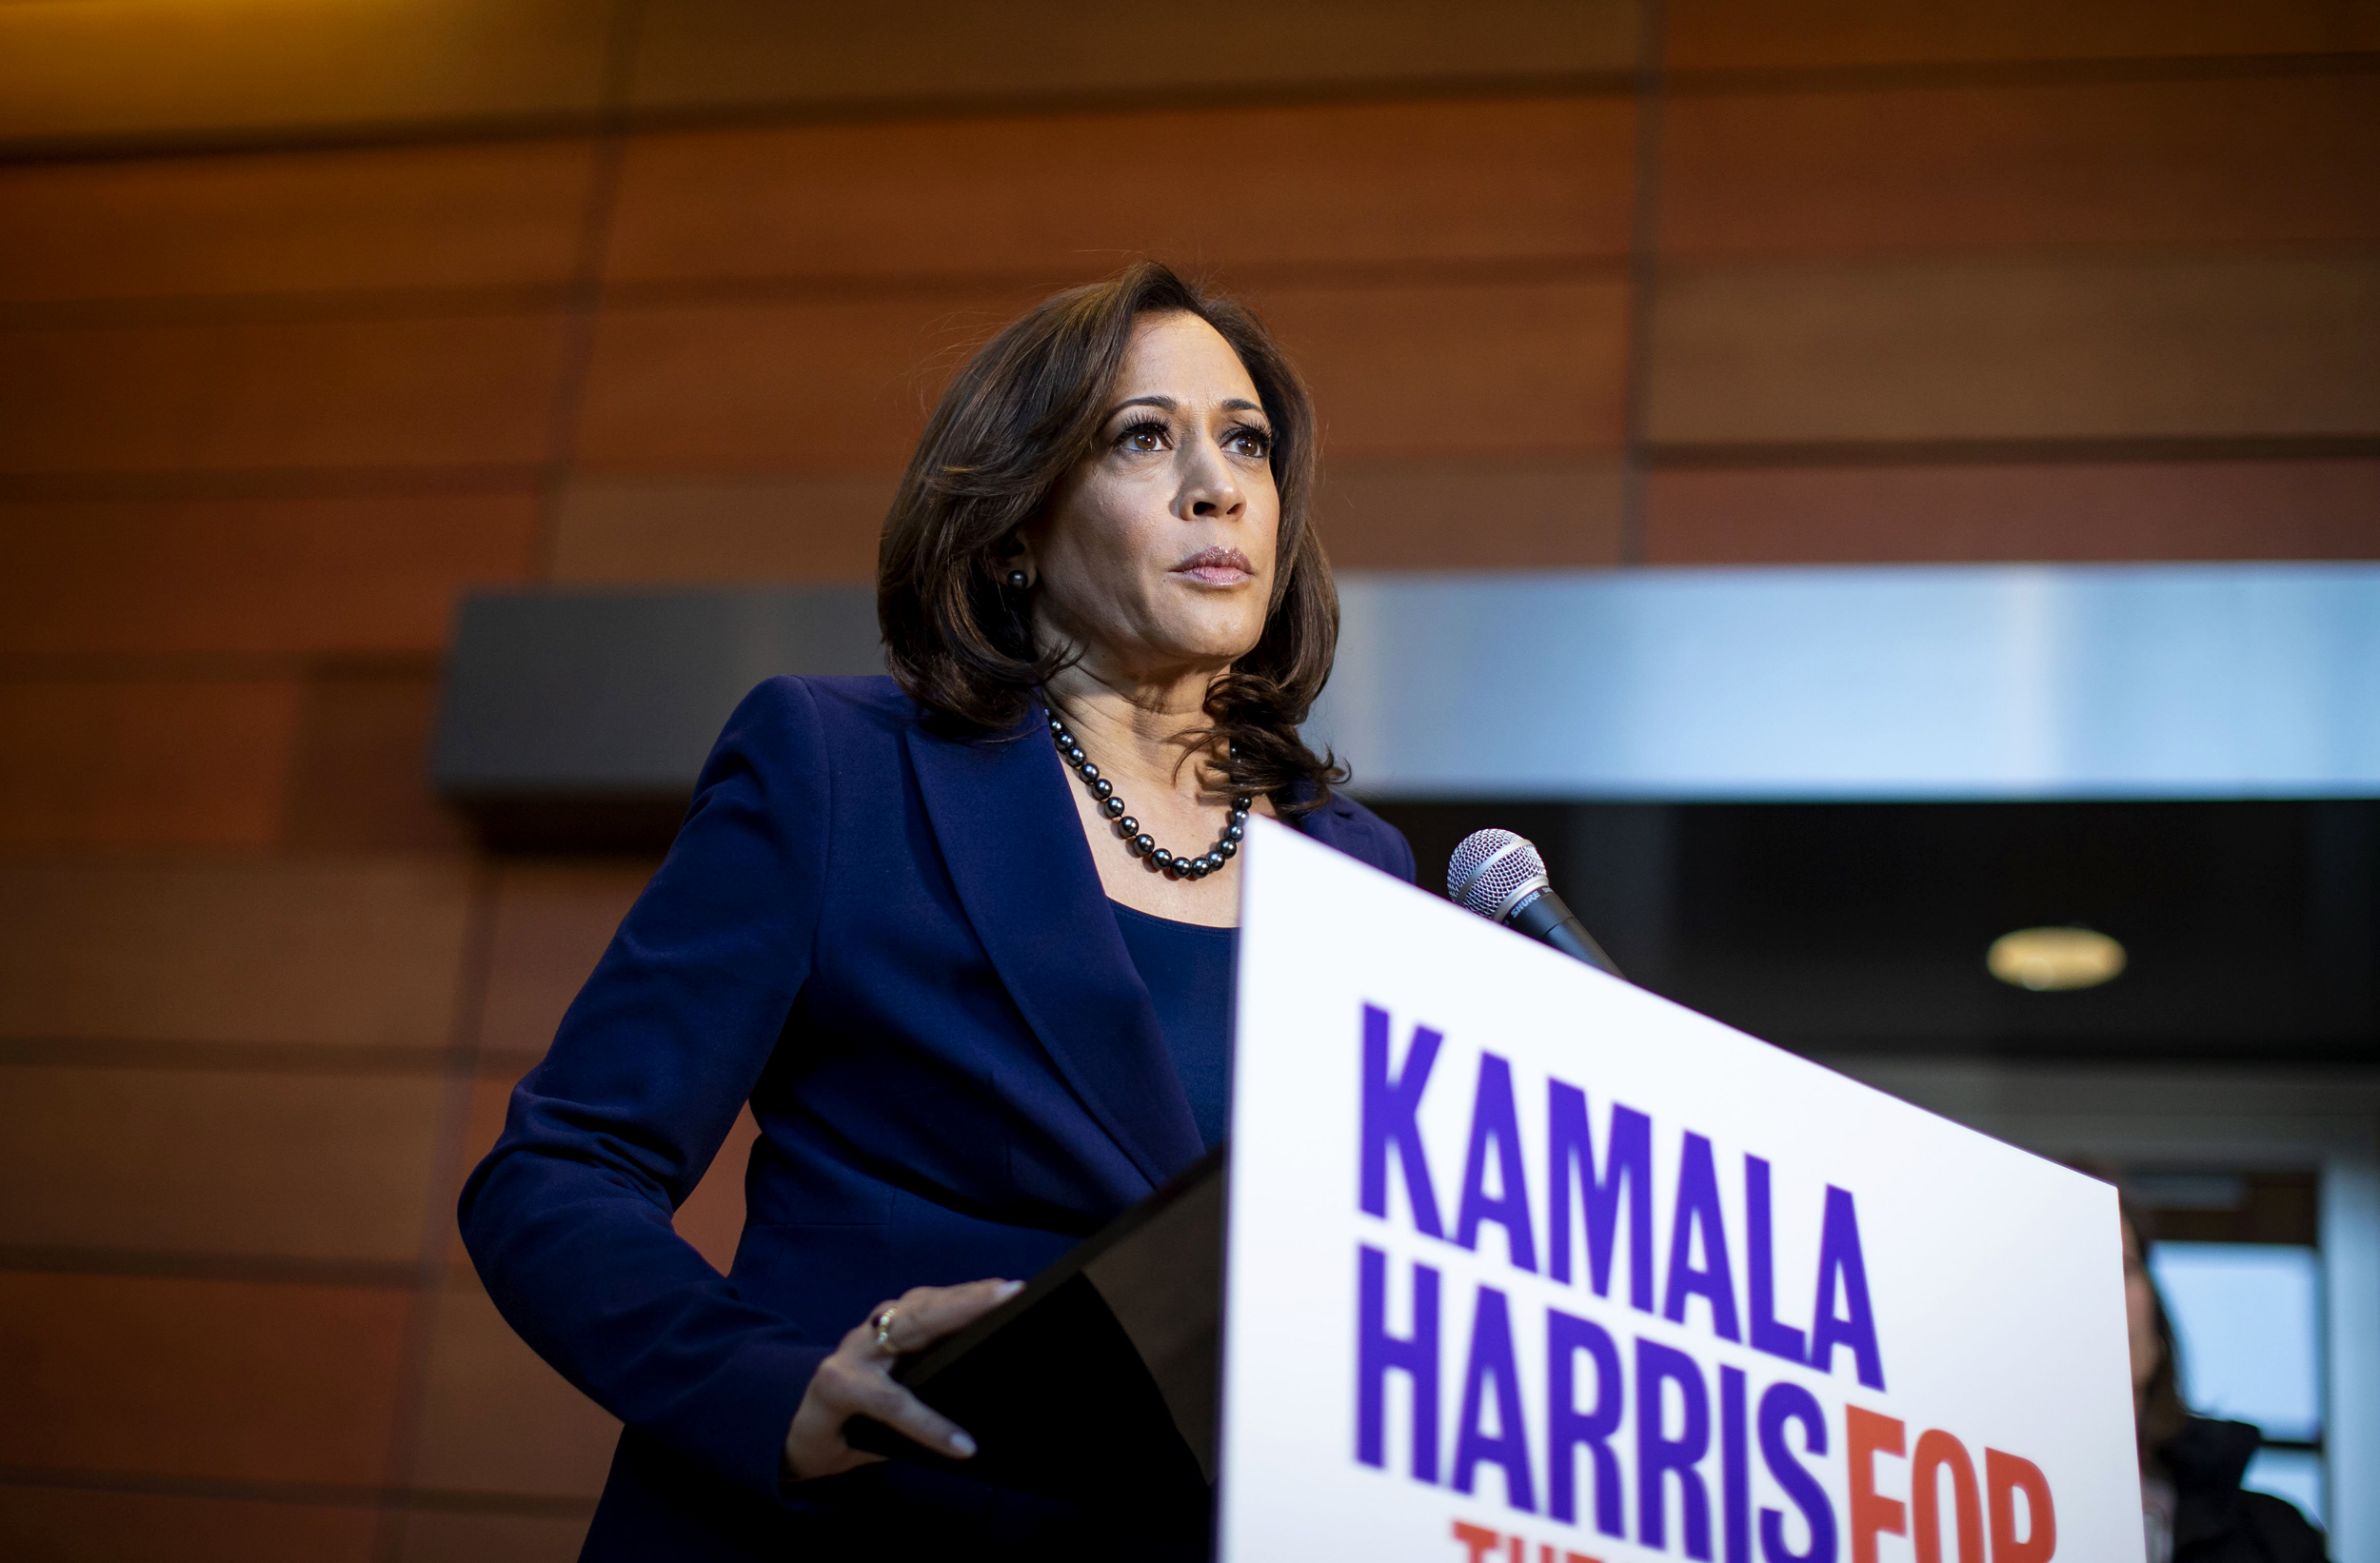 Kamala Harris Candidacy Requires A Nuanced Debate About Her Record Race And Gender Is The Left Ready